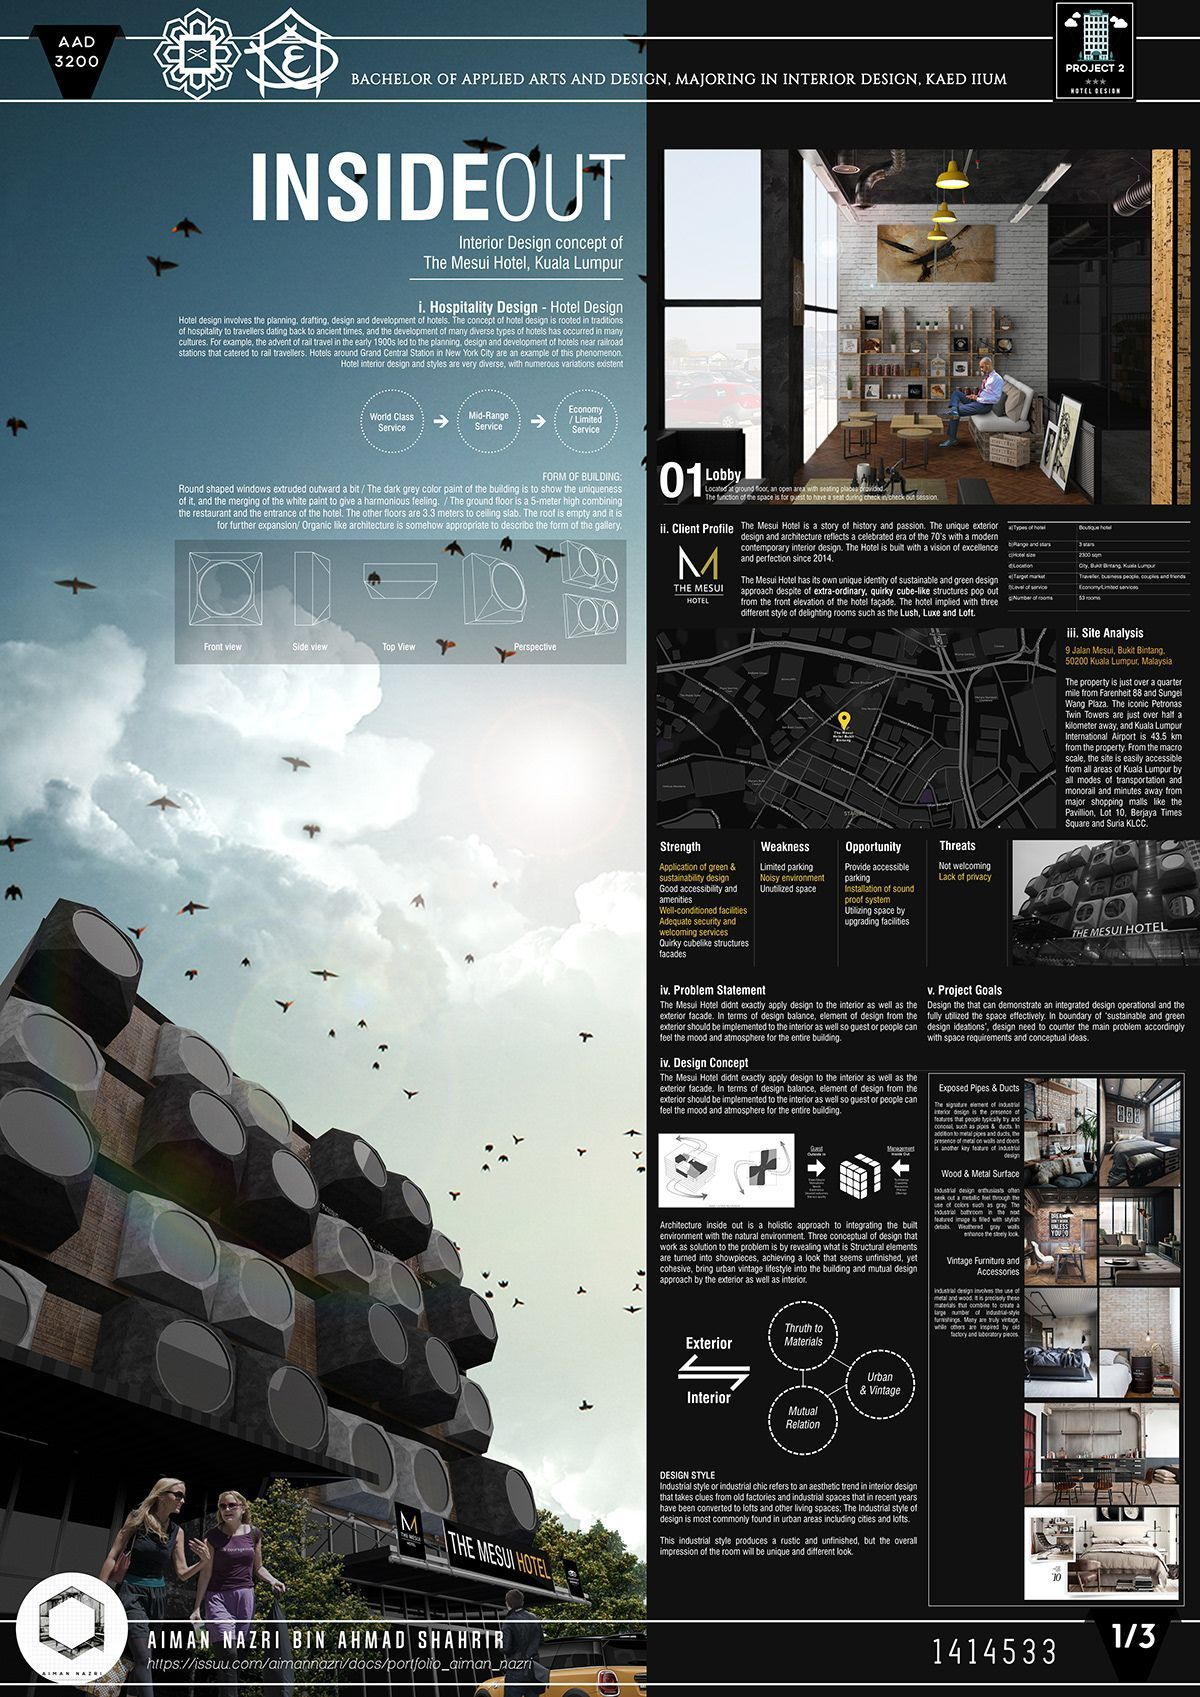 Interior Design Presentation Board  at Behance Adobe Portfolio Blog Powered By Behance Creative Career Tips iOS Apps Android Apps Engli